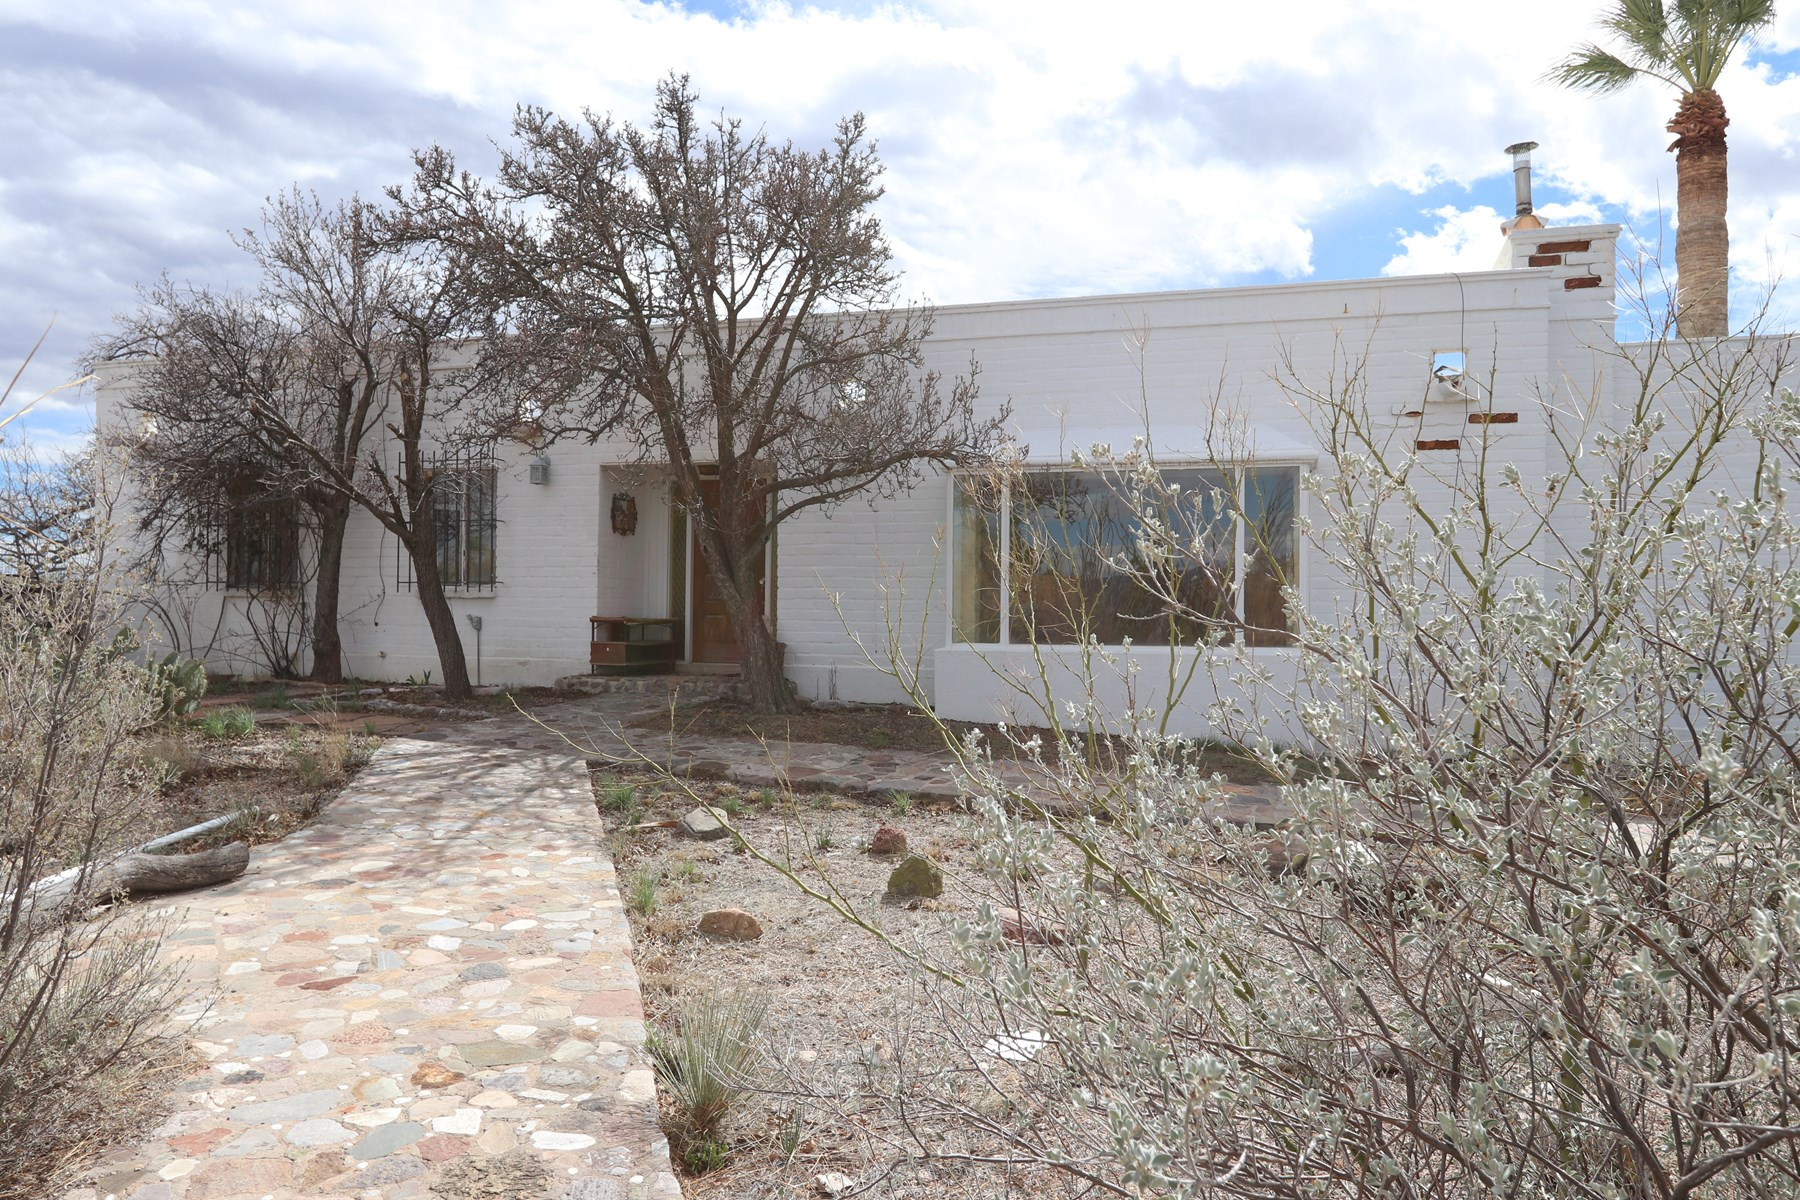 Large 2401 Sq Ft house for sale in Historic Tombstone, AZ.